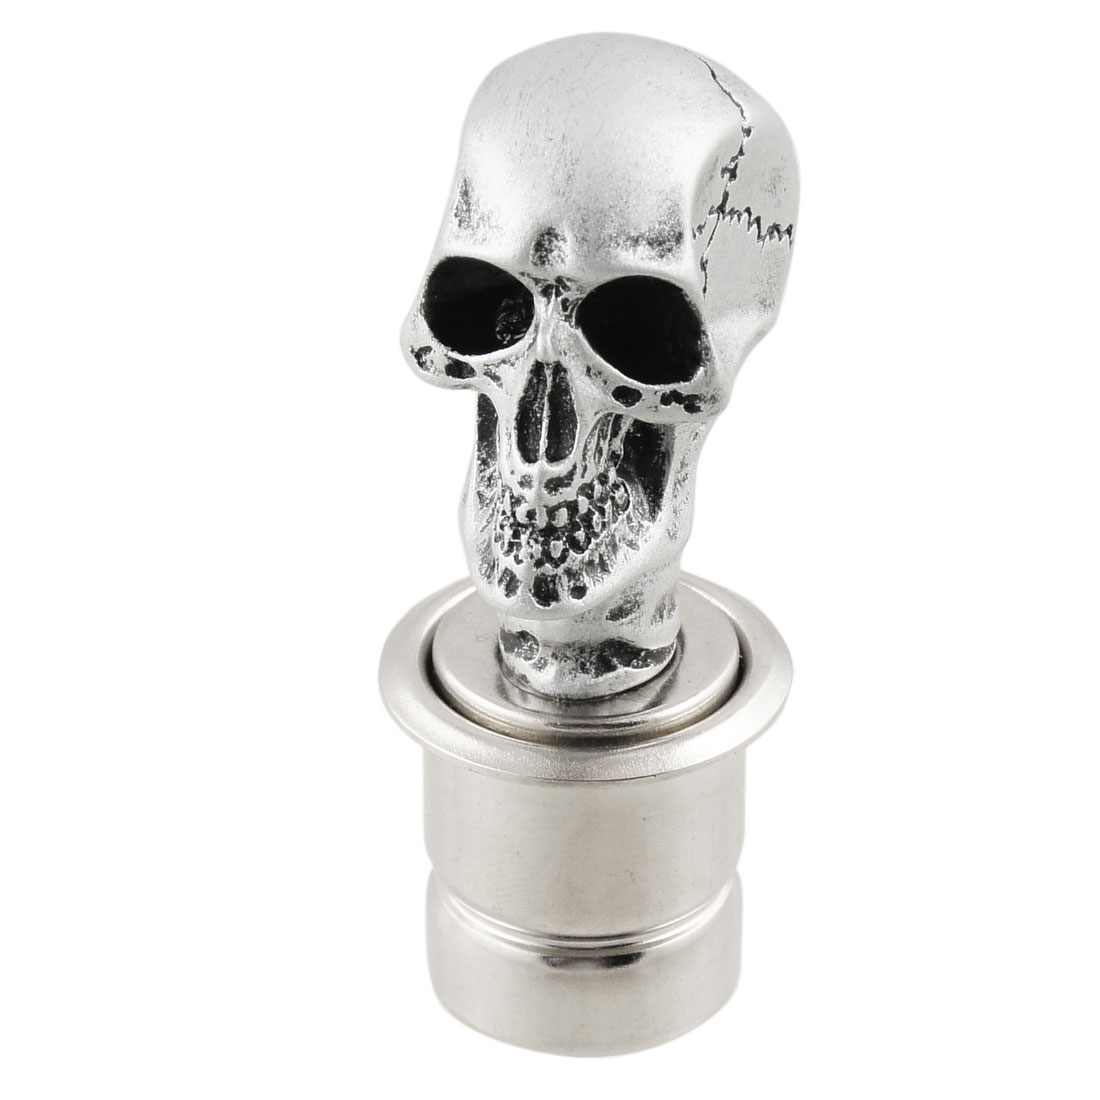 Vehicle Car Silver Tone Skull Head Design Cigarette Lighter Plug DC 12V